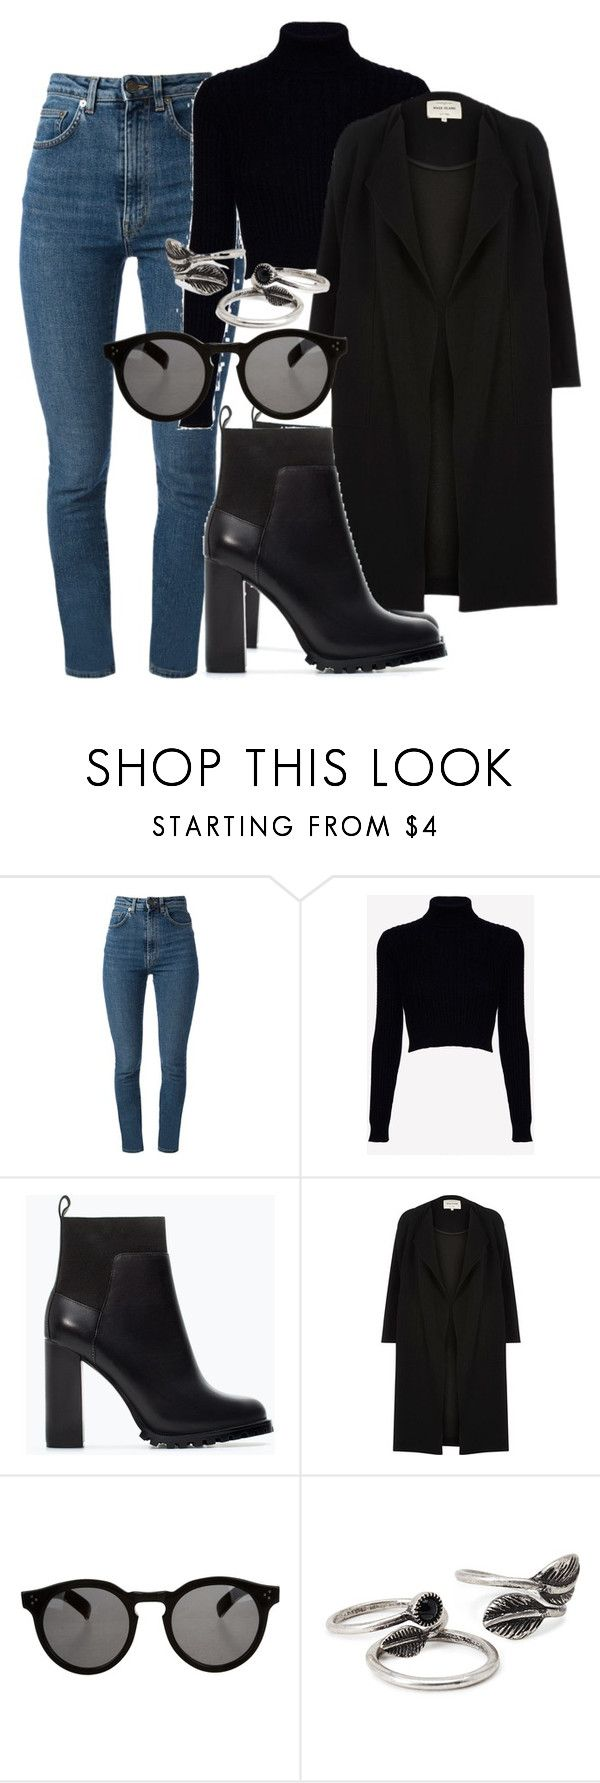 """""""Sem título #2214"""" by mariandradde ❤ liked on Polyvore featuring Yves Saint Laurent, Jack Wills, Zara, River Island, Illesteva and Forever 21"""